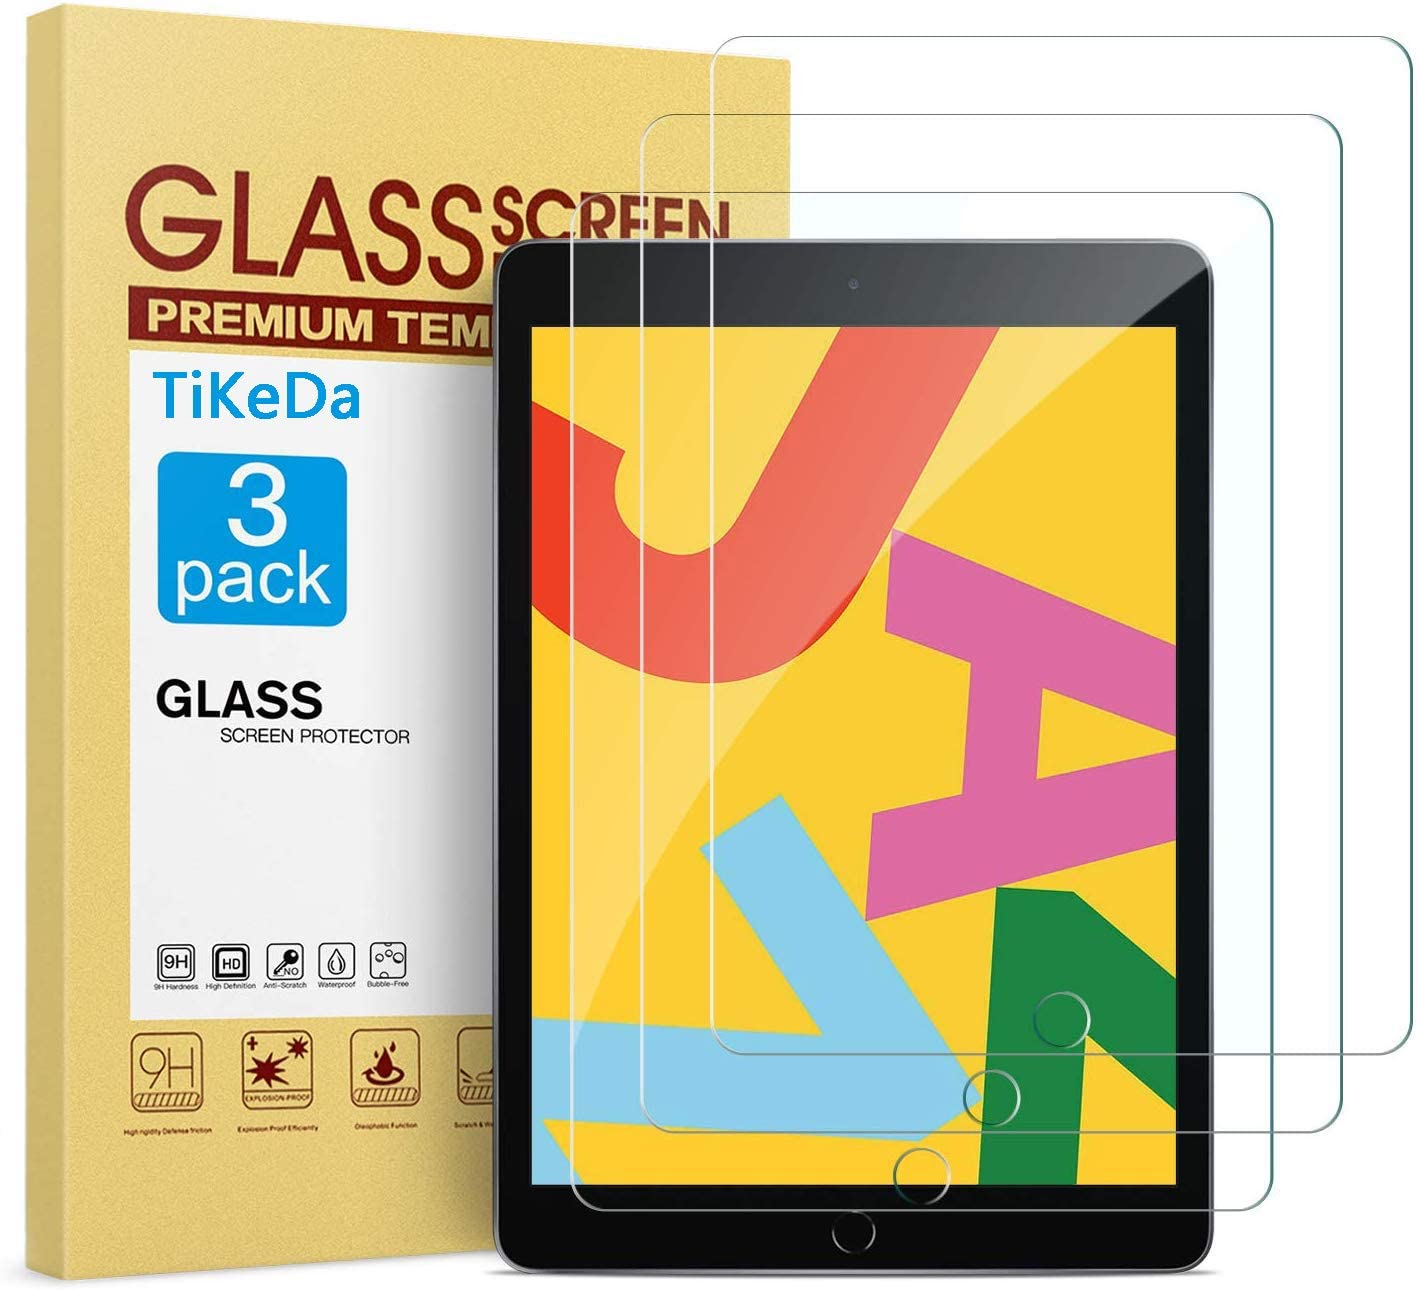 TiKeDa [3 PACK] Screen Protector for iPad 10.2 inch 2020/2019,Tempered Glass Screen Protector for iPad 7th 8thGeneration - Apple Pencil Compatible